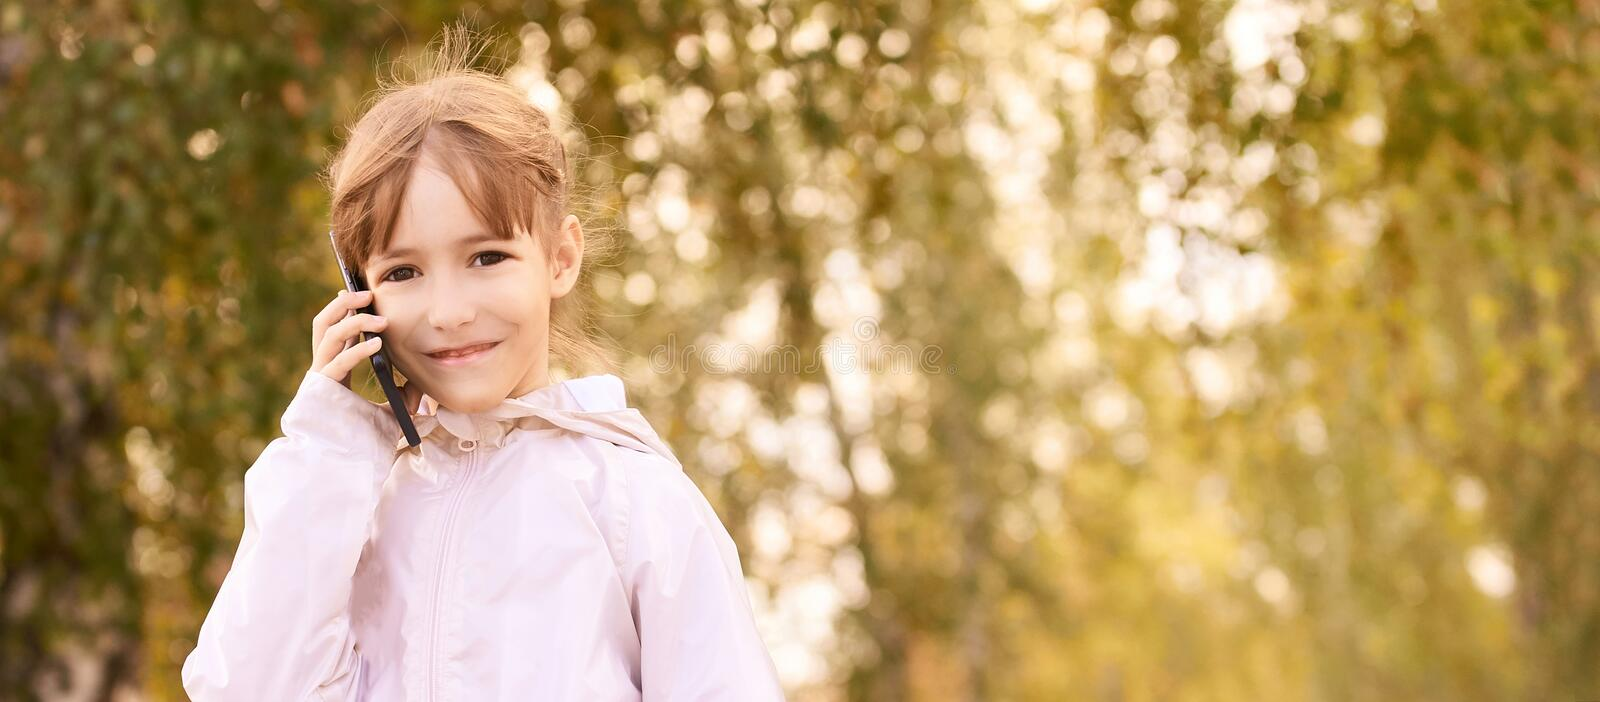 Young happy girl talks cellphone. Phone roaming. People with smartphone. Autumn background.  royalty free stock photo